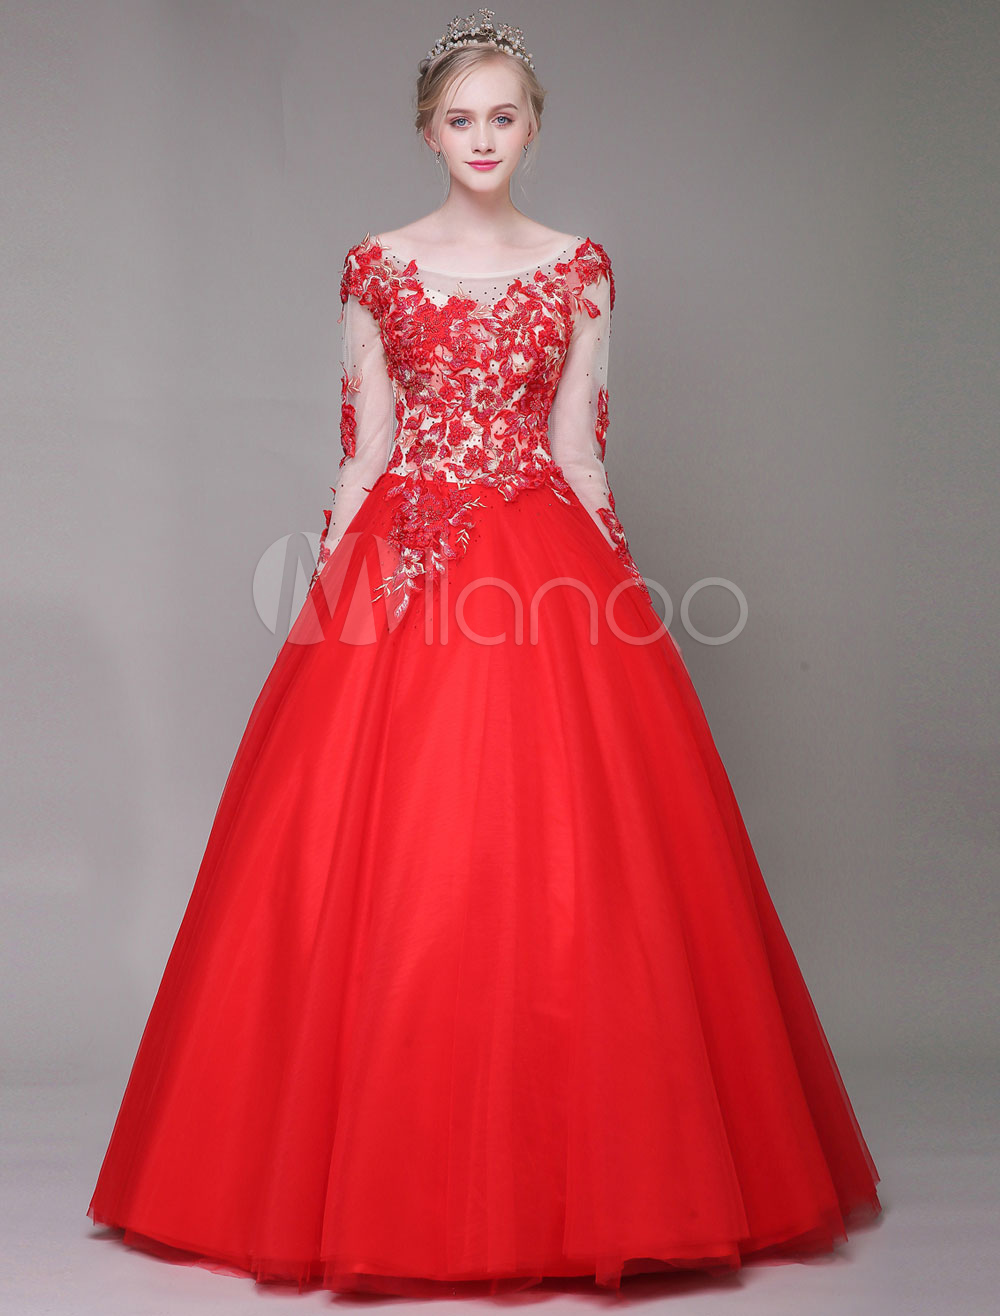 Buy Red Quinceanera Dresses Luxury Long Sleeve Flower Embroidered Rhinestones Illusion Floor Length Princess Pageant Dresses for $254.99 in Milanoo store